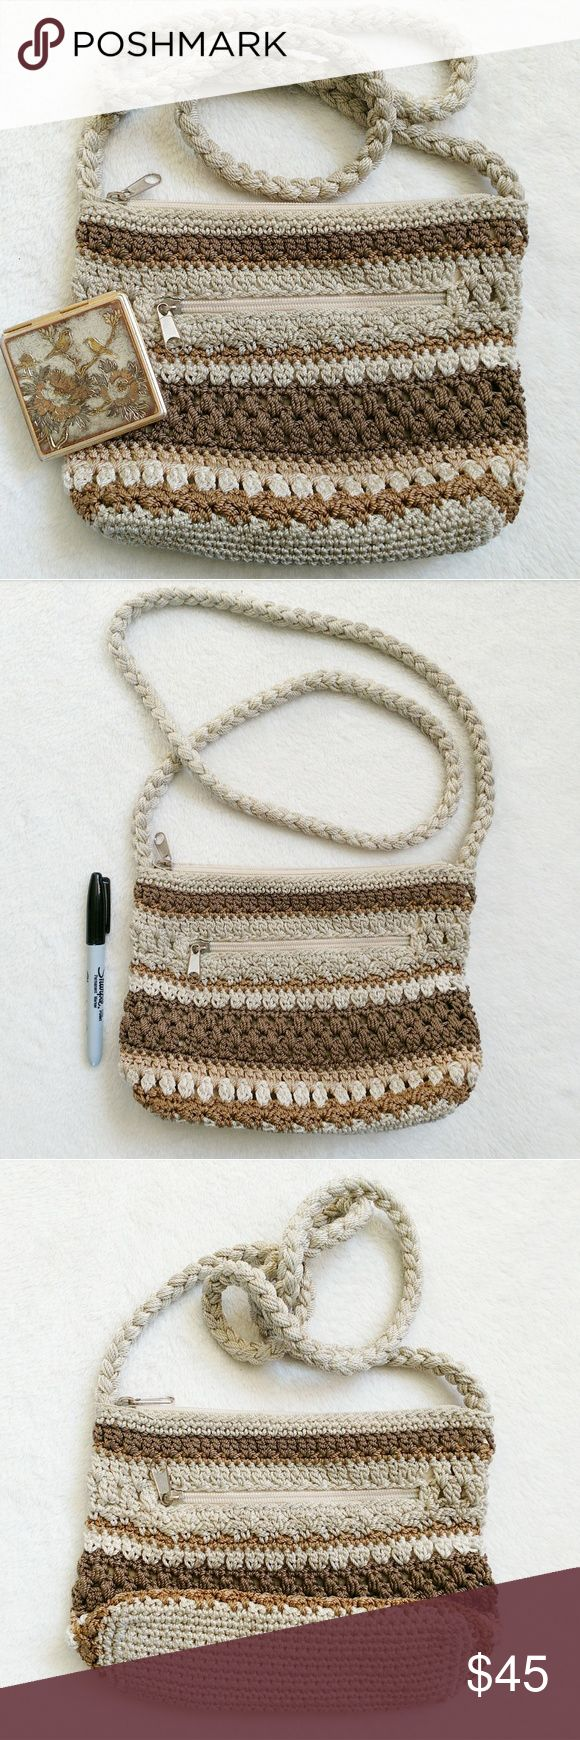 Woven Macrame Tan Brown Neutral Purse Shoulder Bag Neutral toned macrame bag by Lina  Has knotted macrame rope in the colors tan, brown and dark creme   Has a knotted rope strap  Strap is long and could be worn as a shoulder bag or as crossbody   Has a small zipper pocket on the outside and in the inside   Outside is in good condition, with minor wearing on the zipper pulls, but there are several marks on the inside, shown   Sharpie is to show scale   Keywords: vintage style, retro inspired…